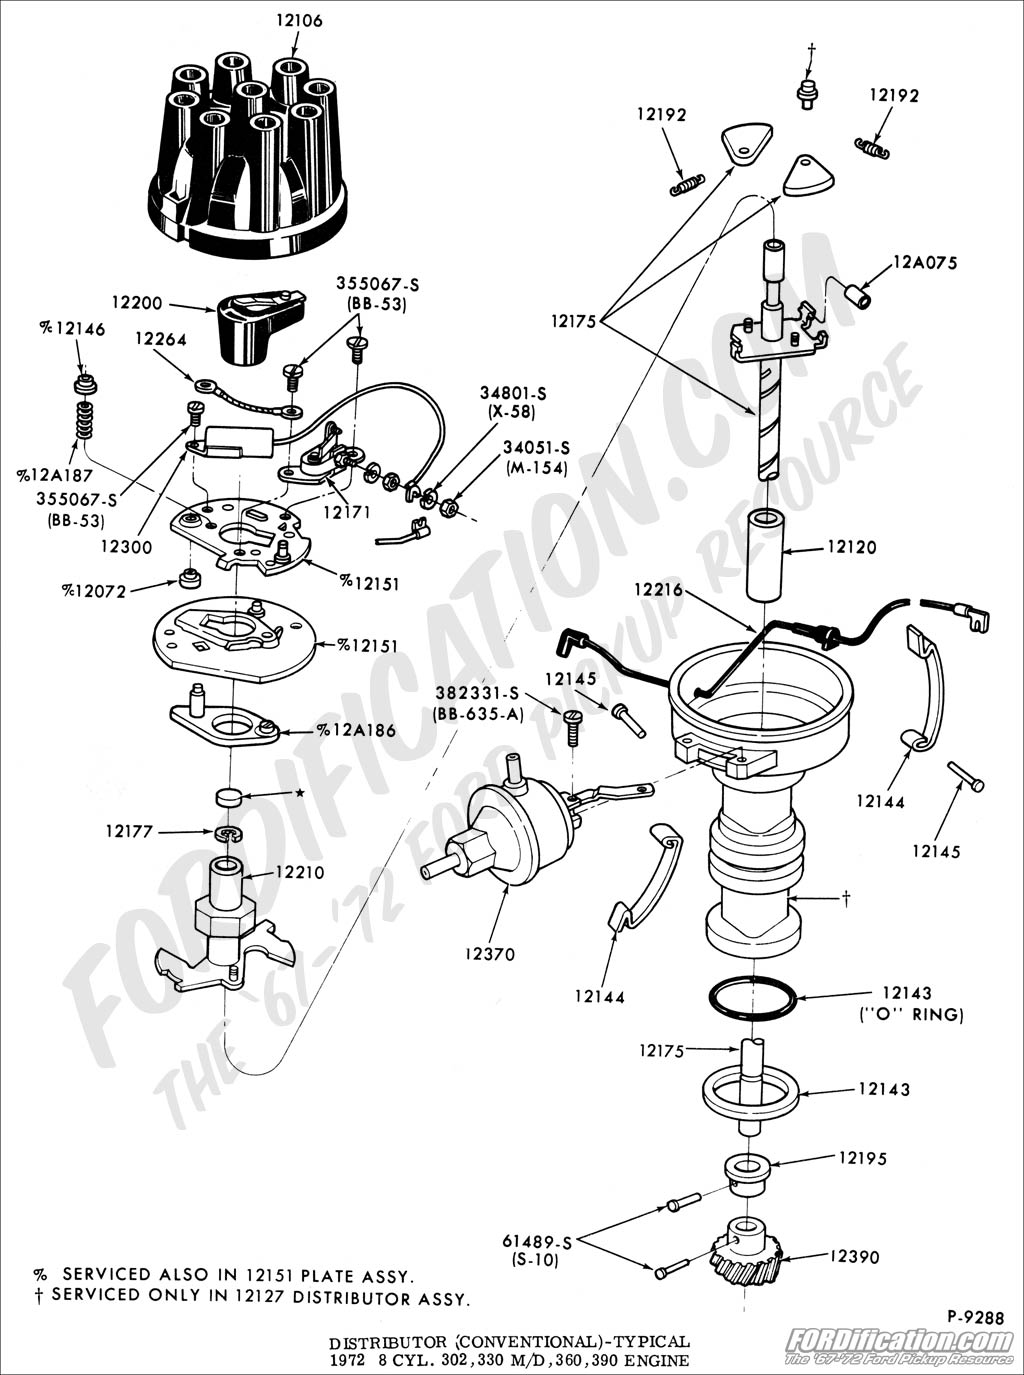 distributor_V8 02 ford truck technical drawings and schematics section i ford 390 engine wiring diagram at gsmportal.co